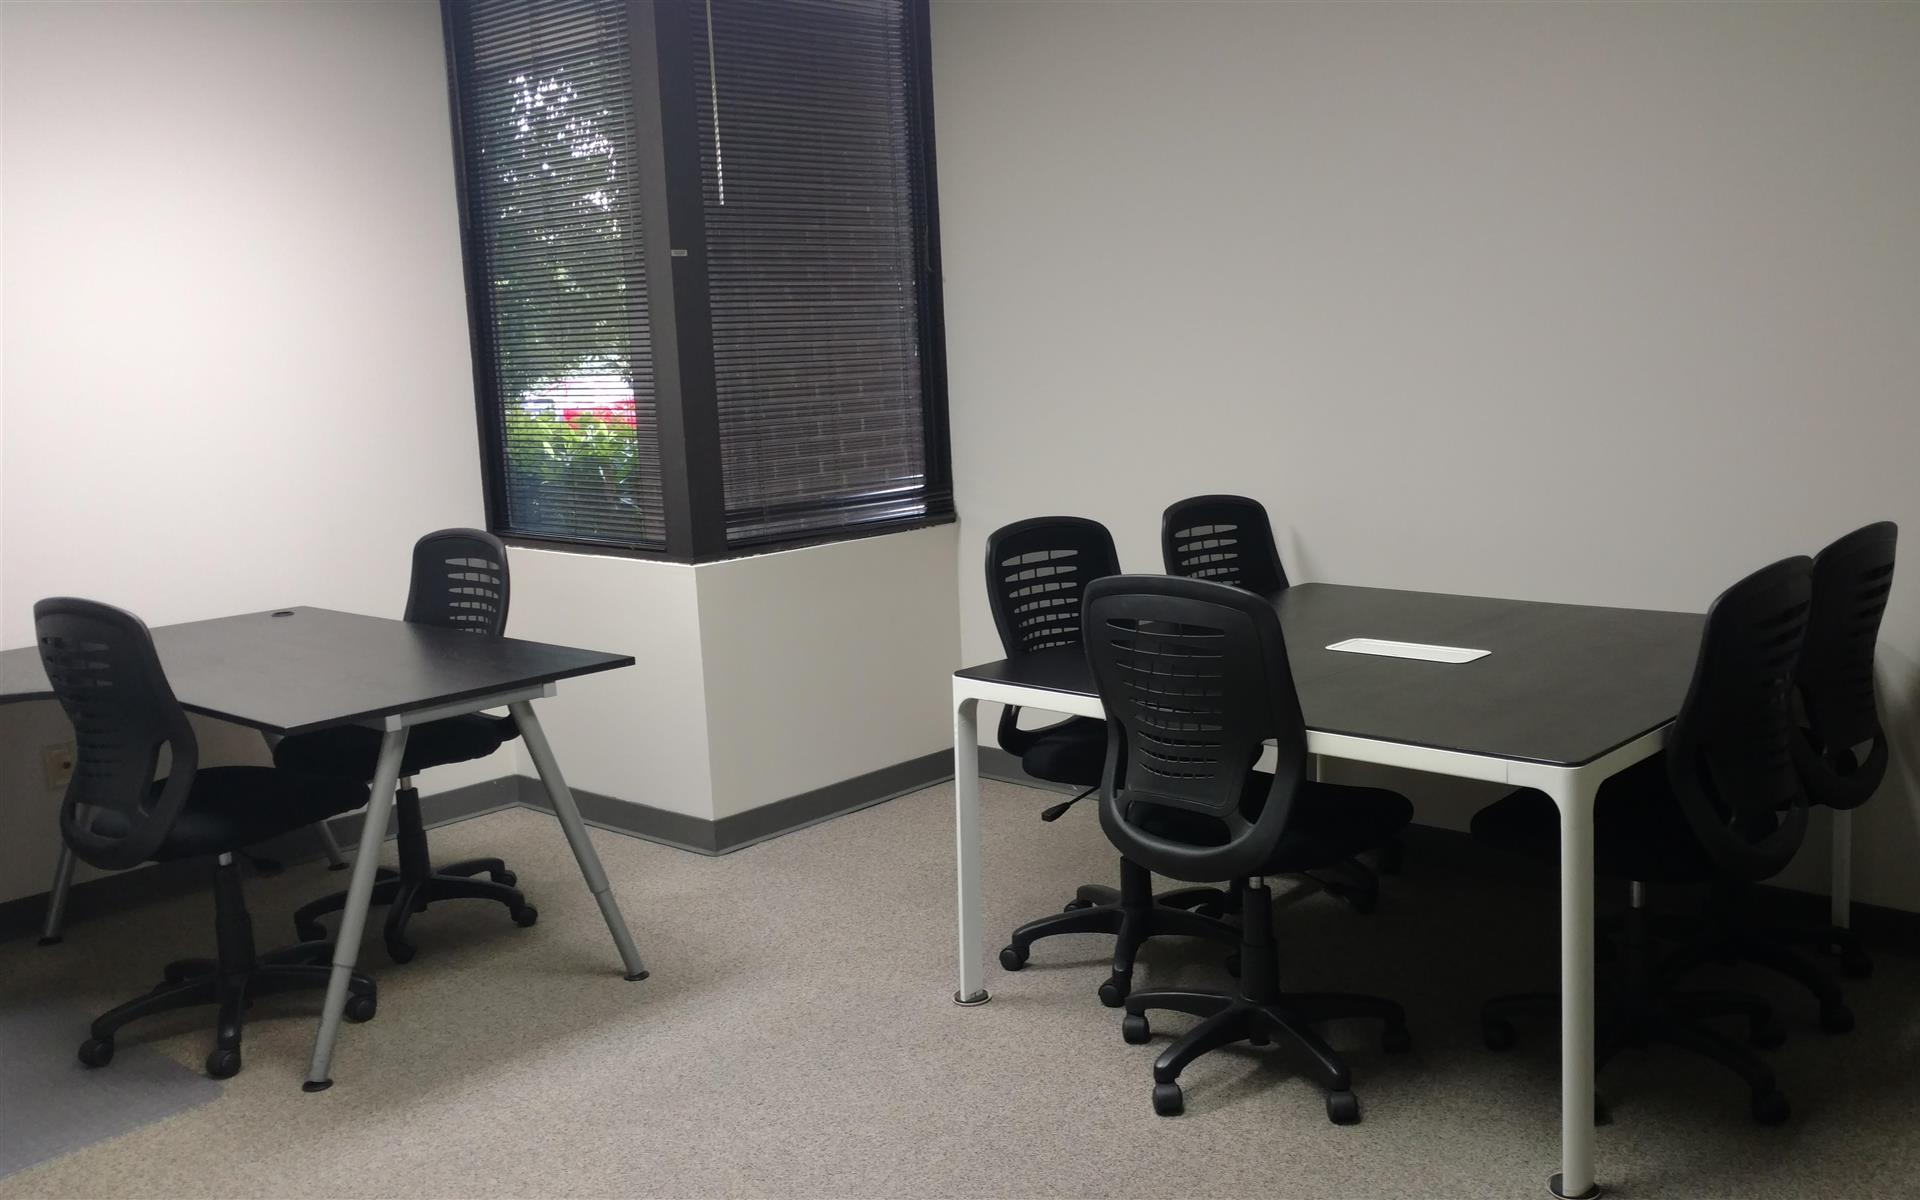 Perimeter Park Executive Center - Office 5 - Team office for up to 4